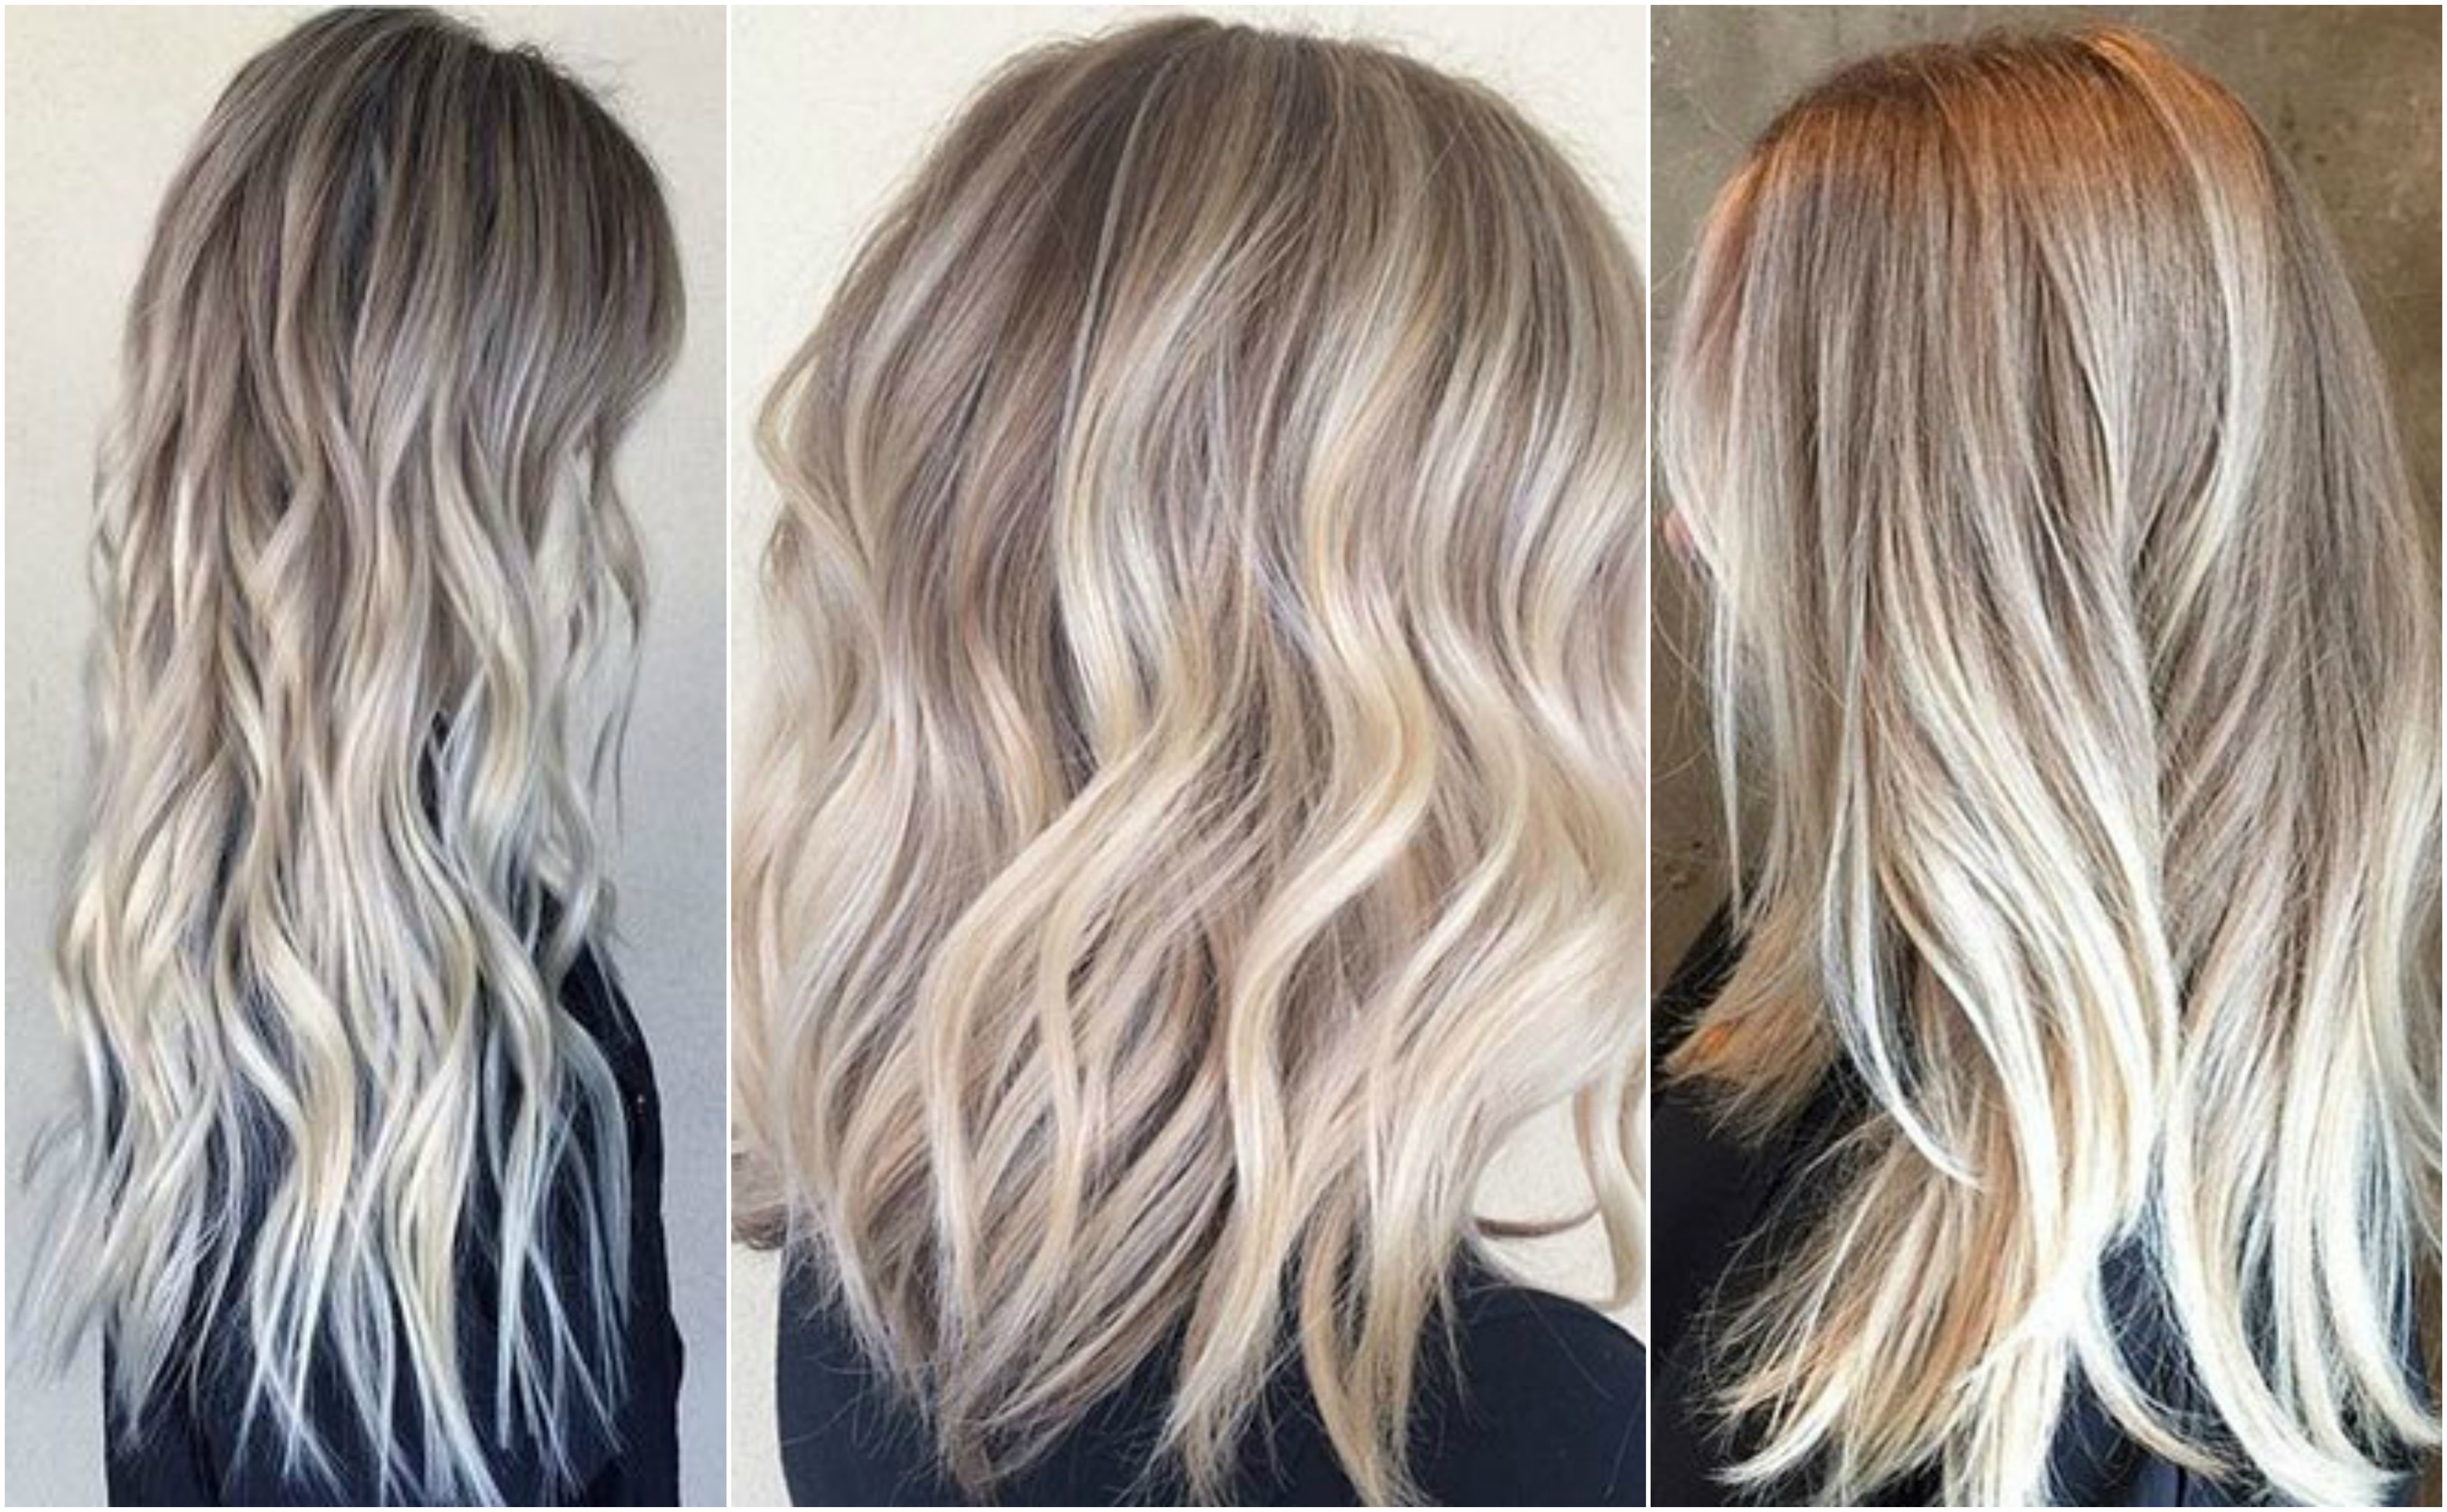 It's time to try the crystal ash hair trend